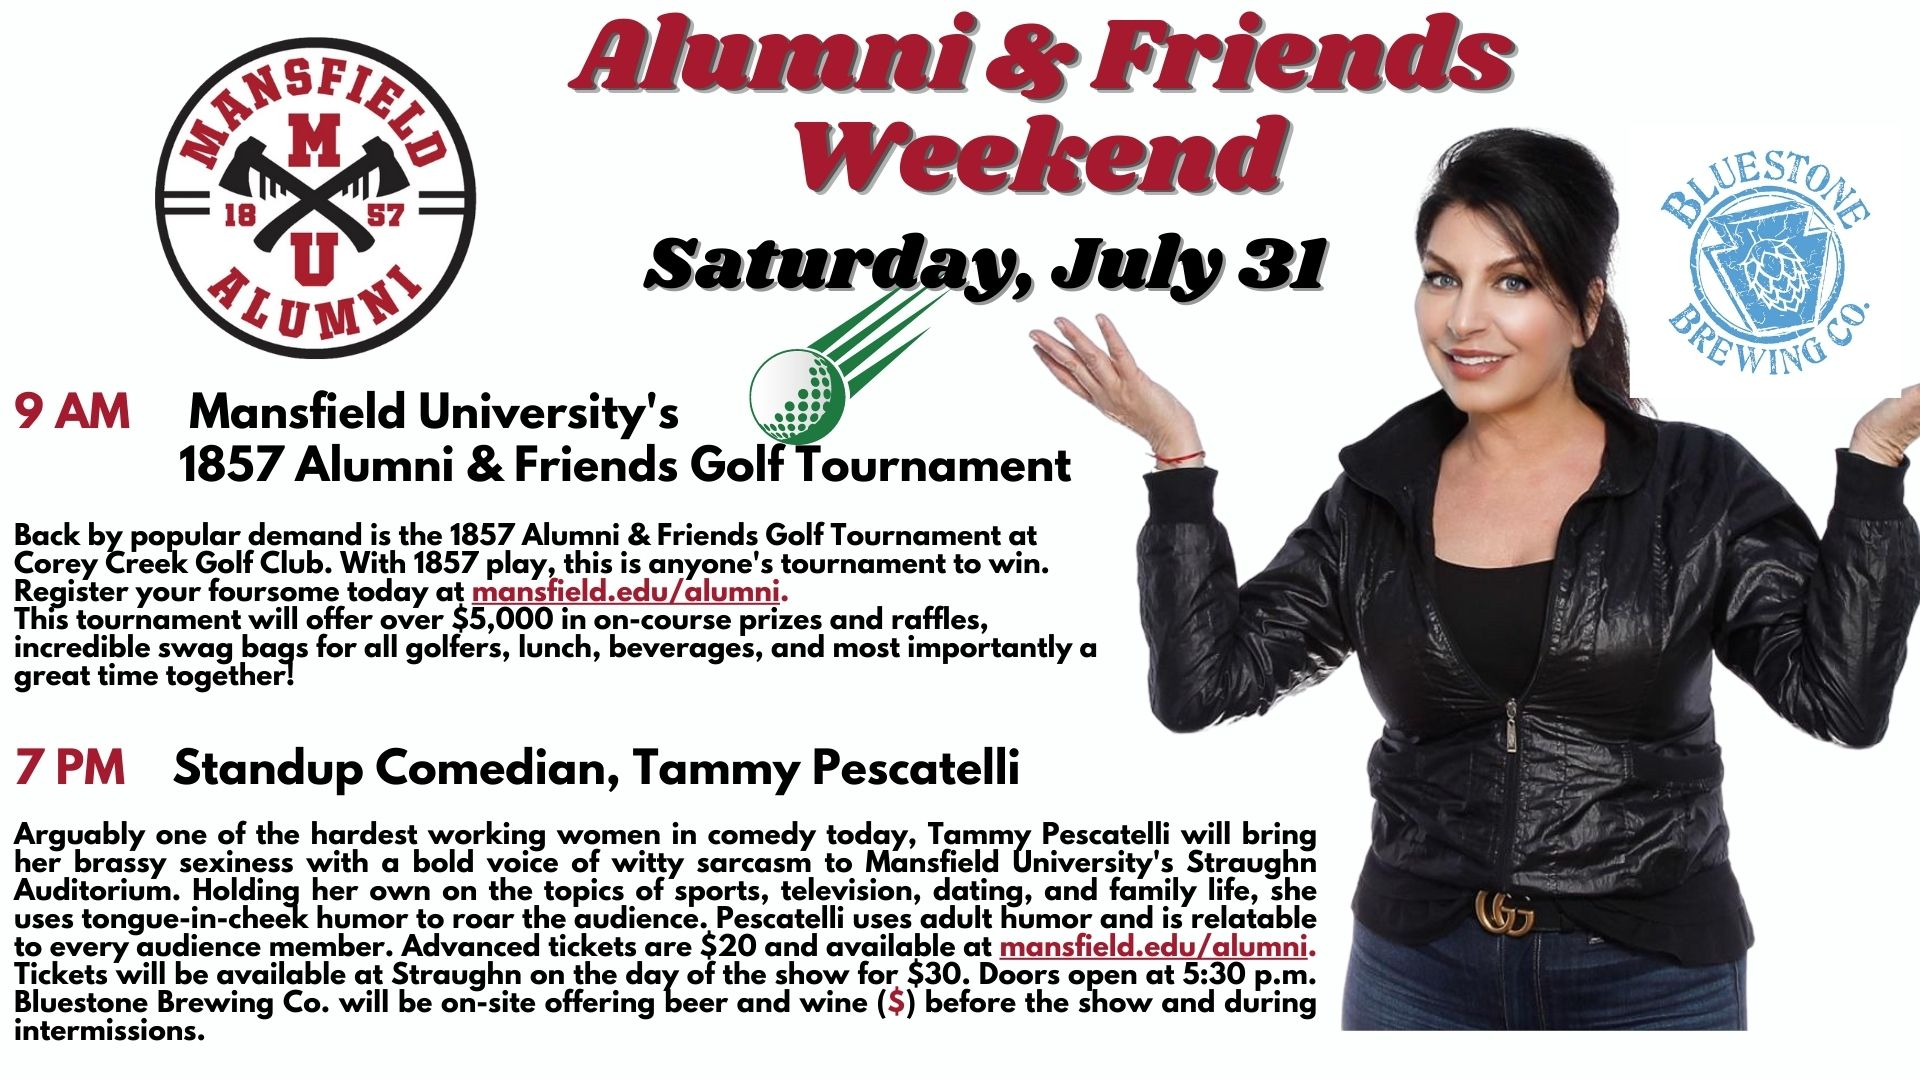 Alumni and Friends Weekend, Saturday July 31th, 2021